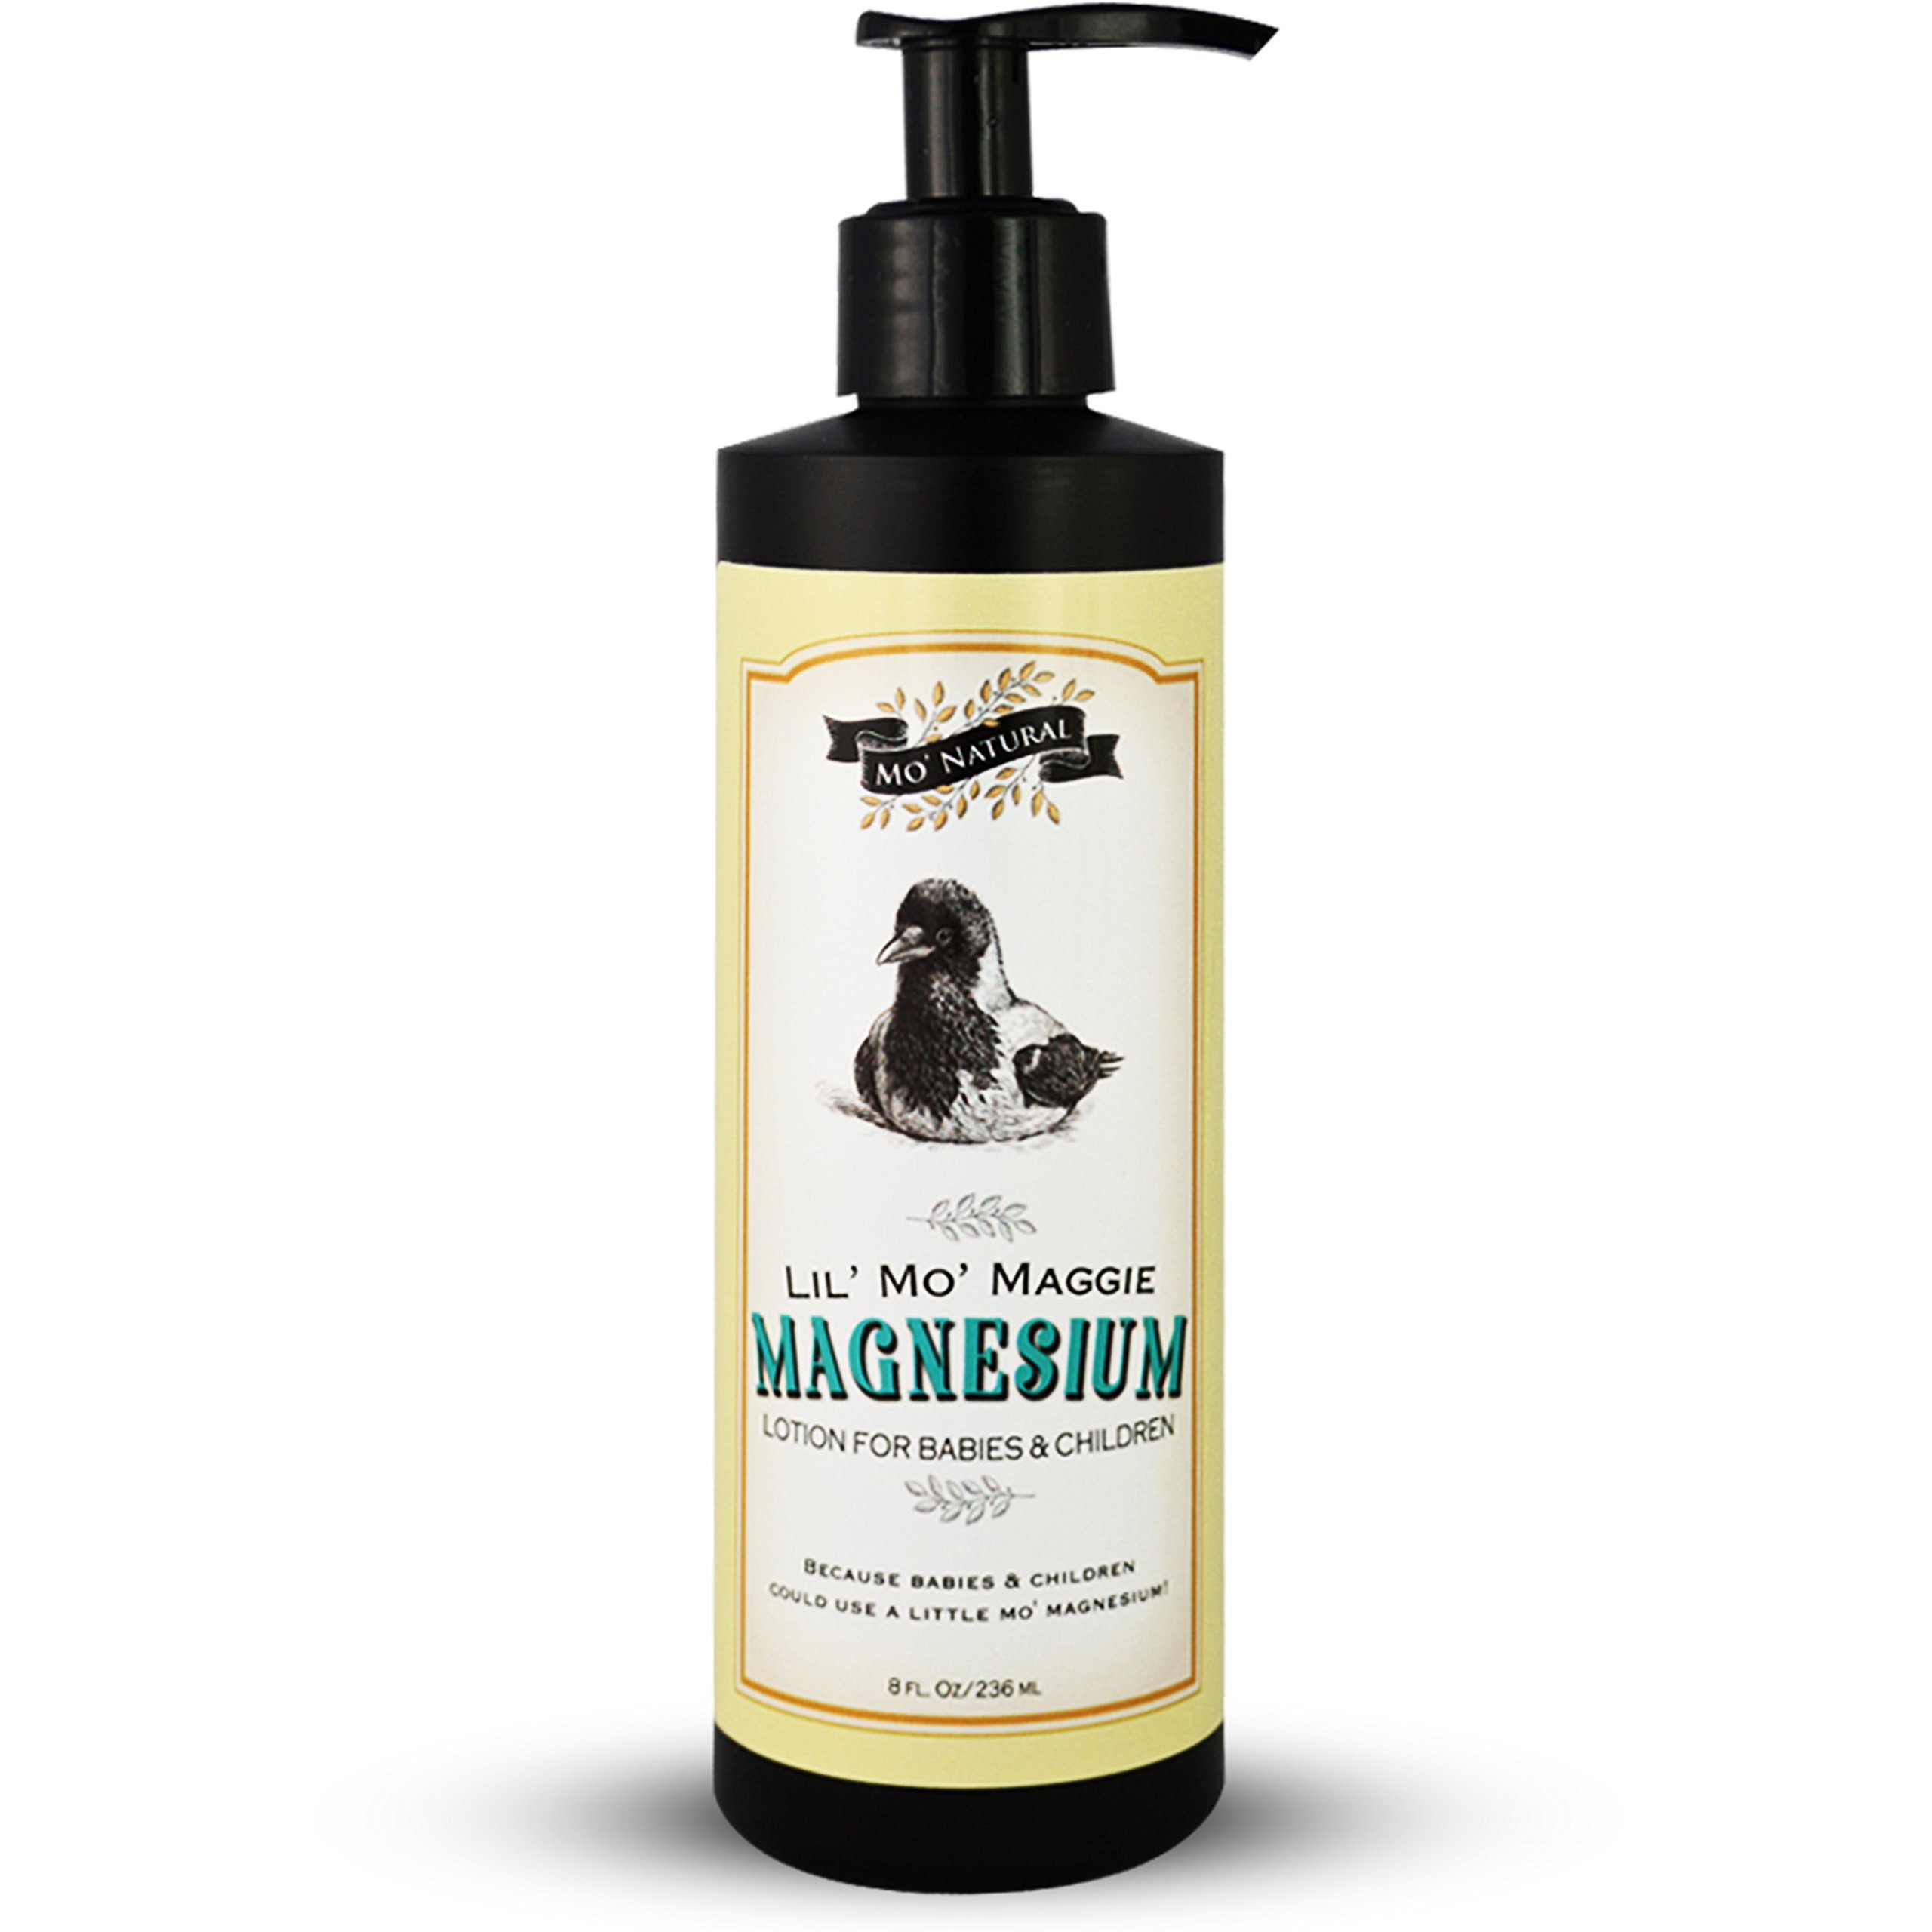 Lil' Mo' Maggie Magnesium Lotion for Babies & Children - Pure and Gentle - 600 mg/oz - 100 mg/TSP. - Organic Oils & Shea Butter - 8 oz - by Mo' Natural by Mo' Natural